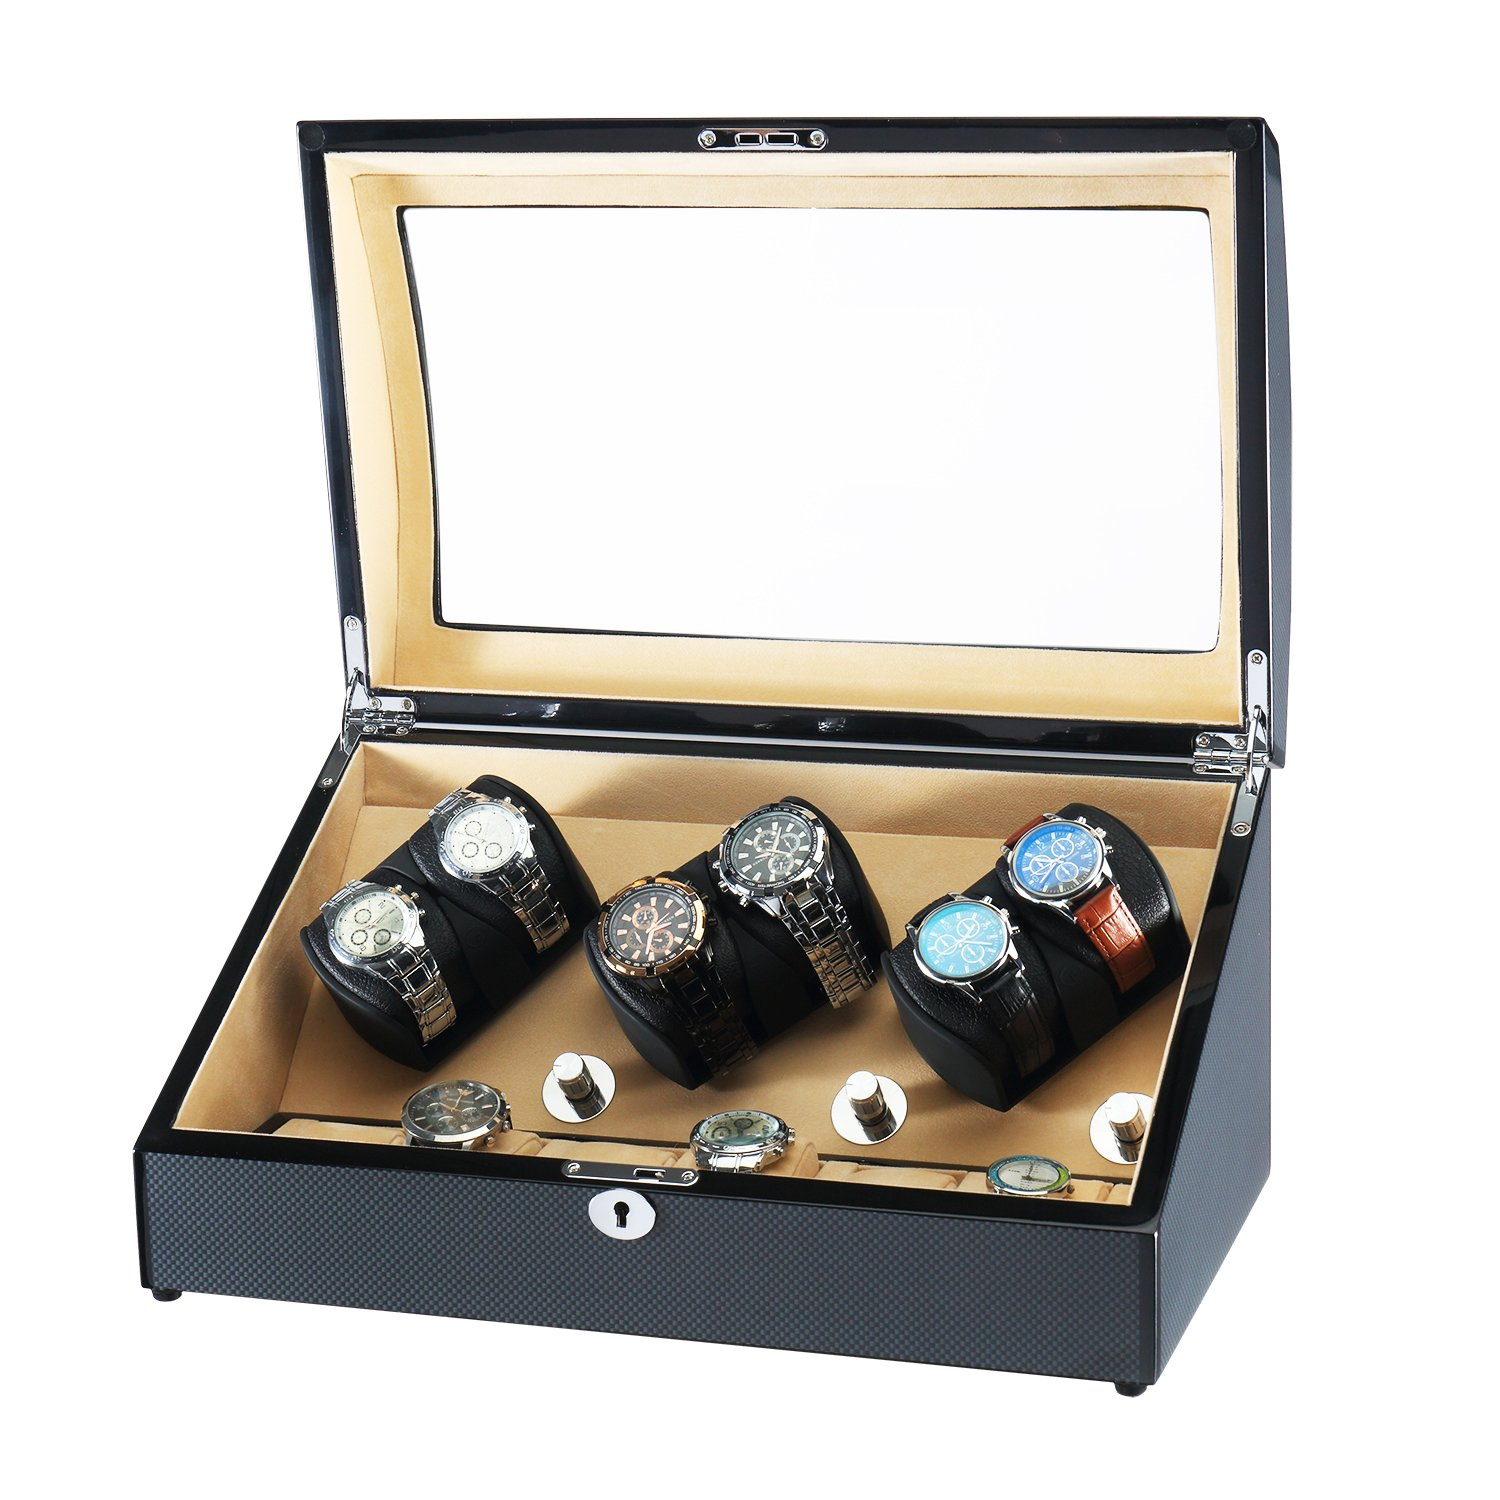 OLYMBROS Wooden Automatic Watch Winder with Extra Storages Spaces for Watches with LED Light